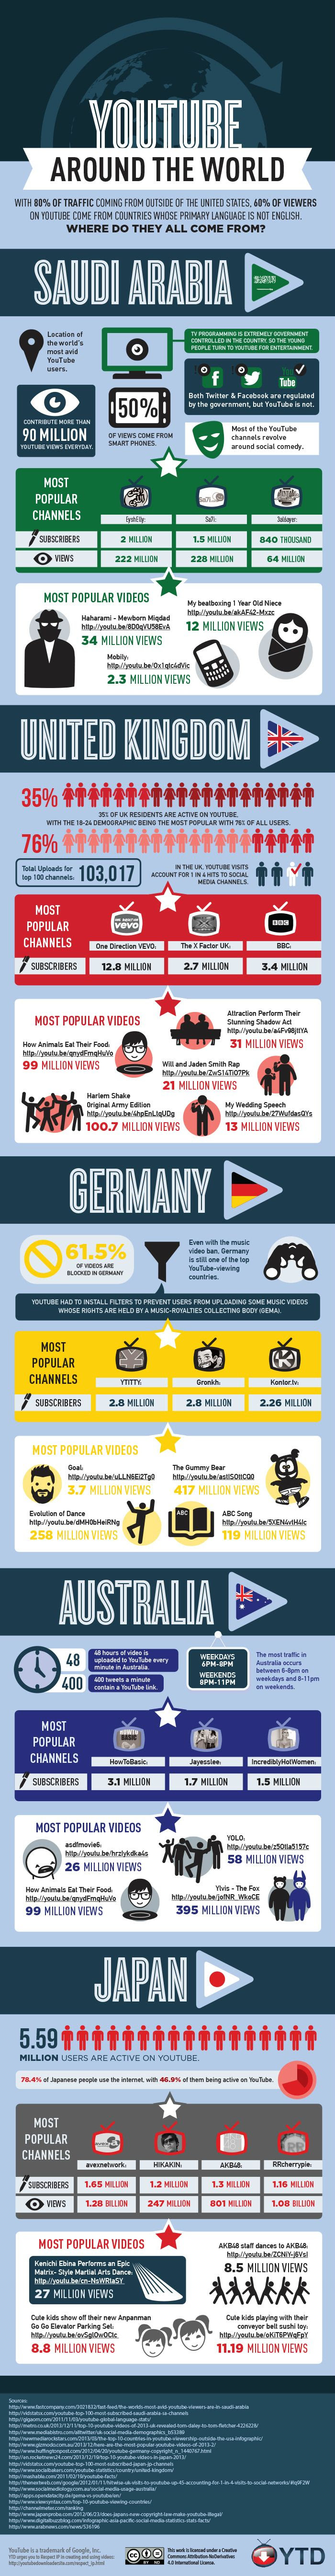 YouTube Around The World - #infographic #socialmedia